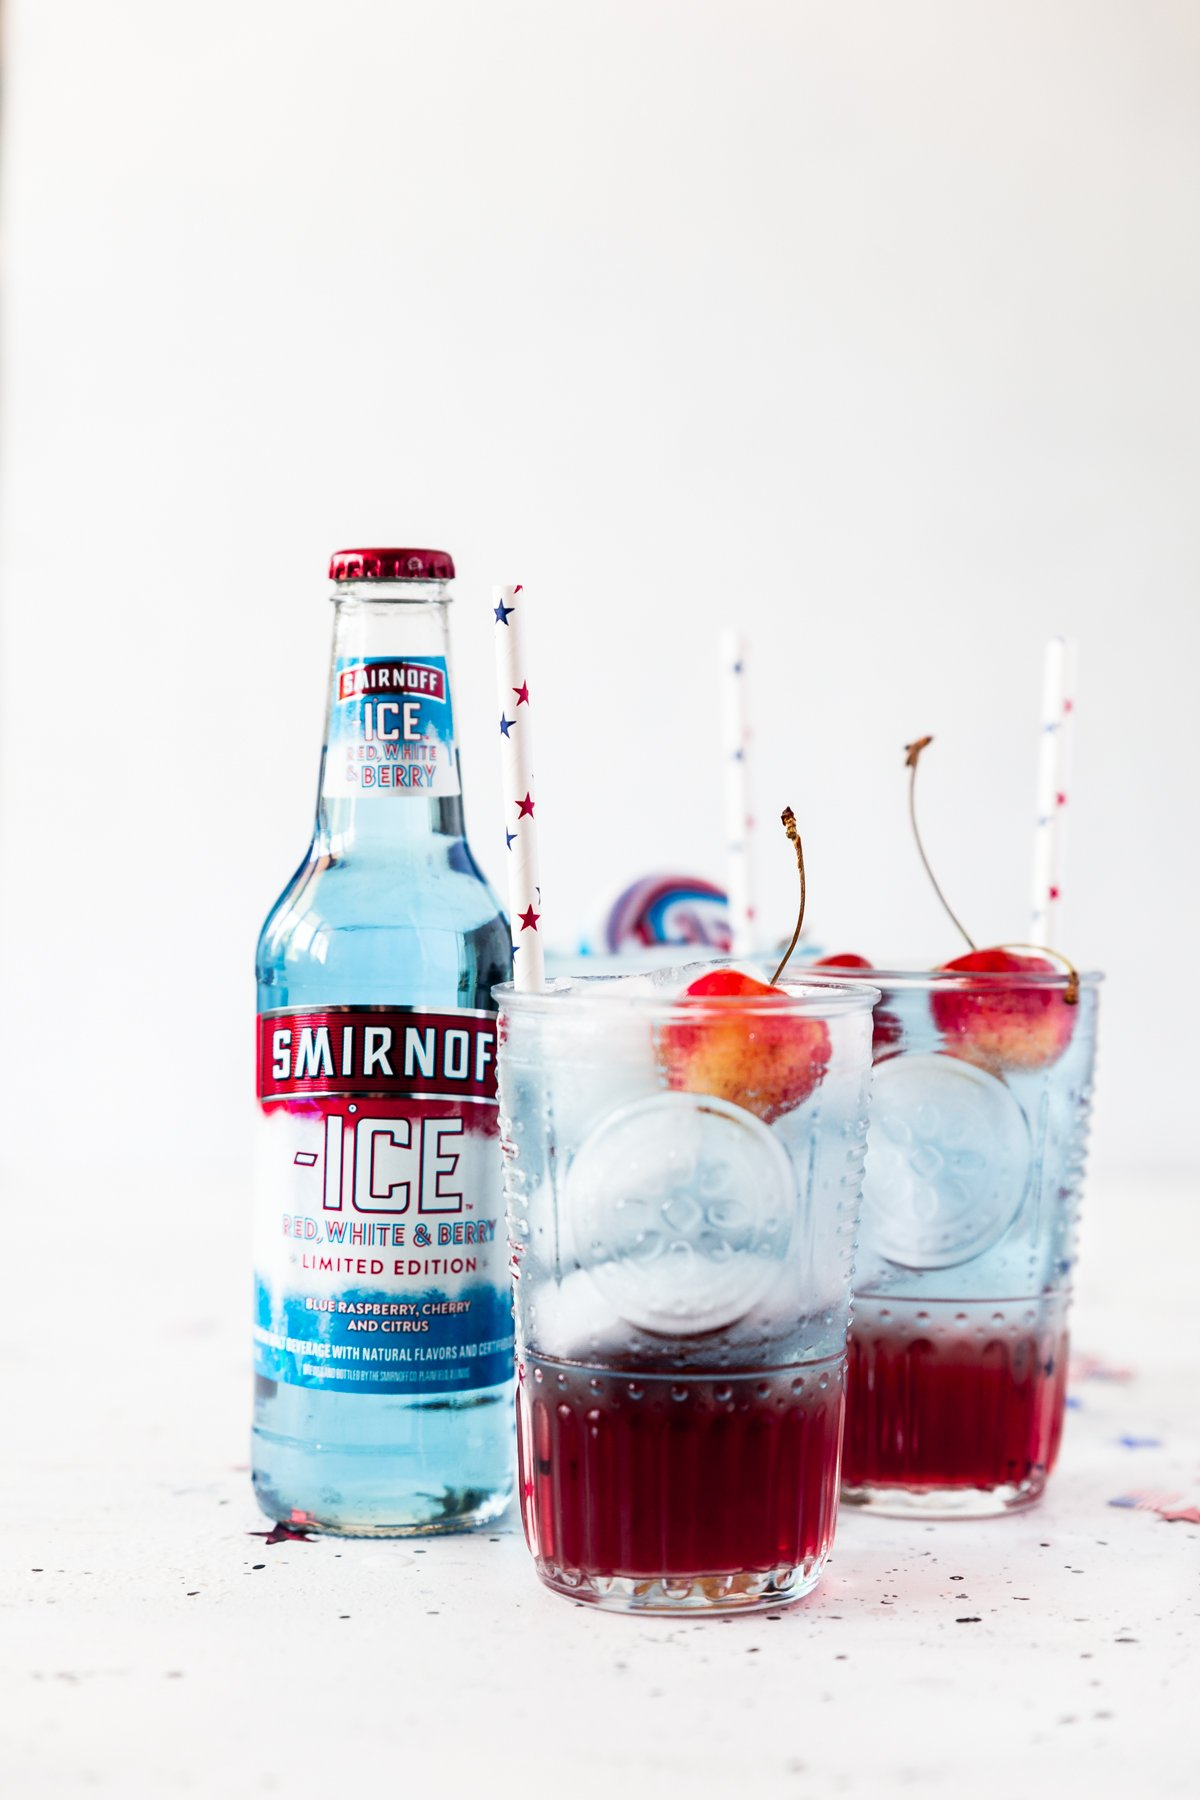 three glasses of cherries jubilee cocktail, red on bottom, blue on top, with fresh cherries, white paper straws with red and blue stars, bottle of Smirnoff ICE red white and berry